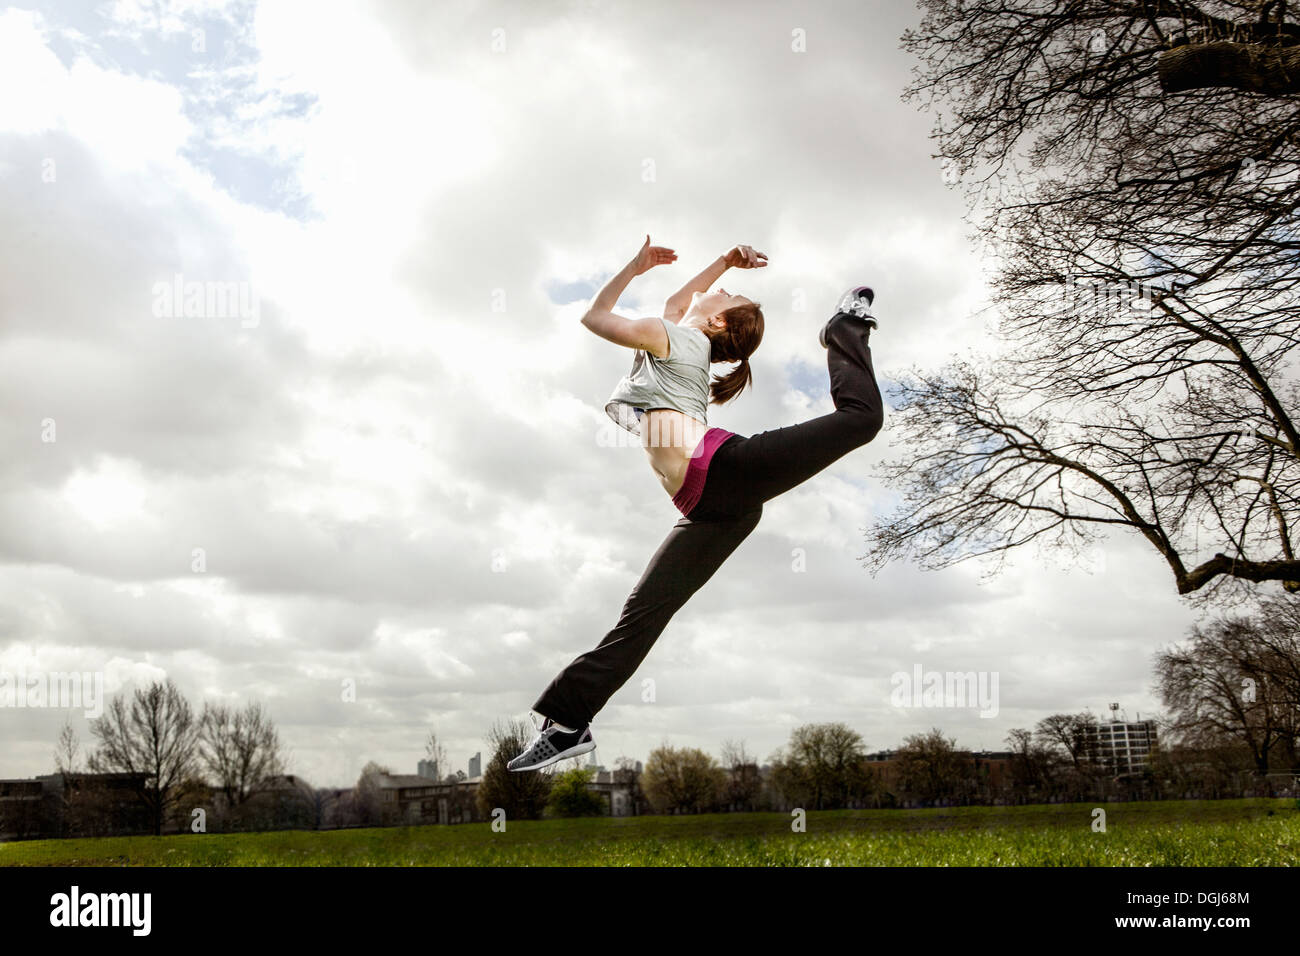 Woman jumping in mid air with bent leg - Stock Image